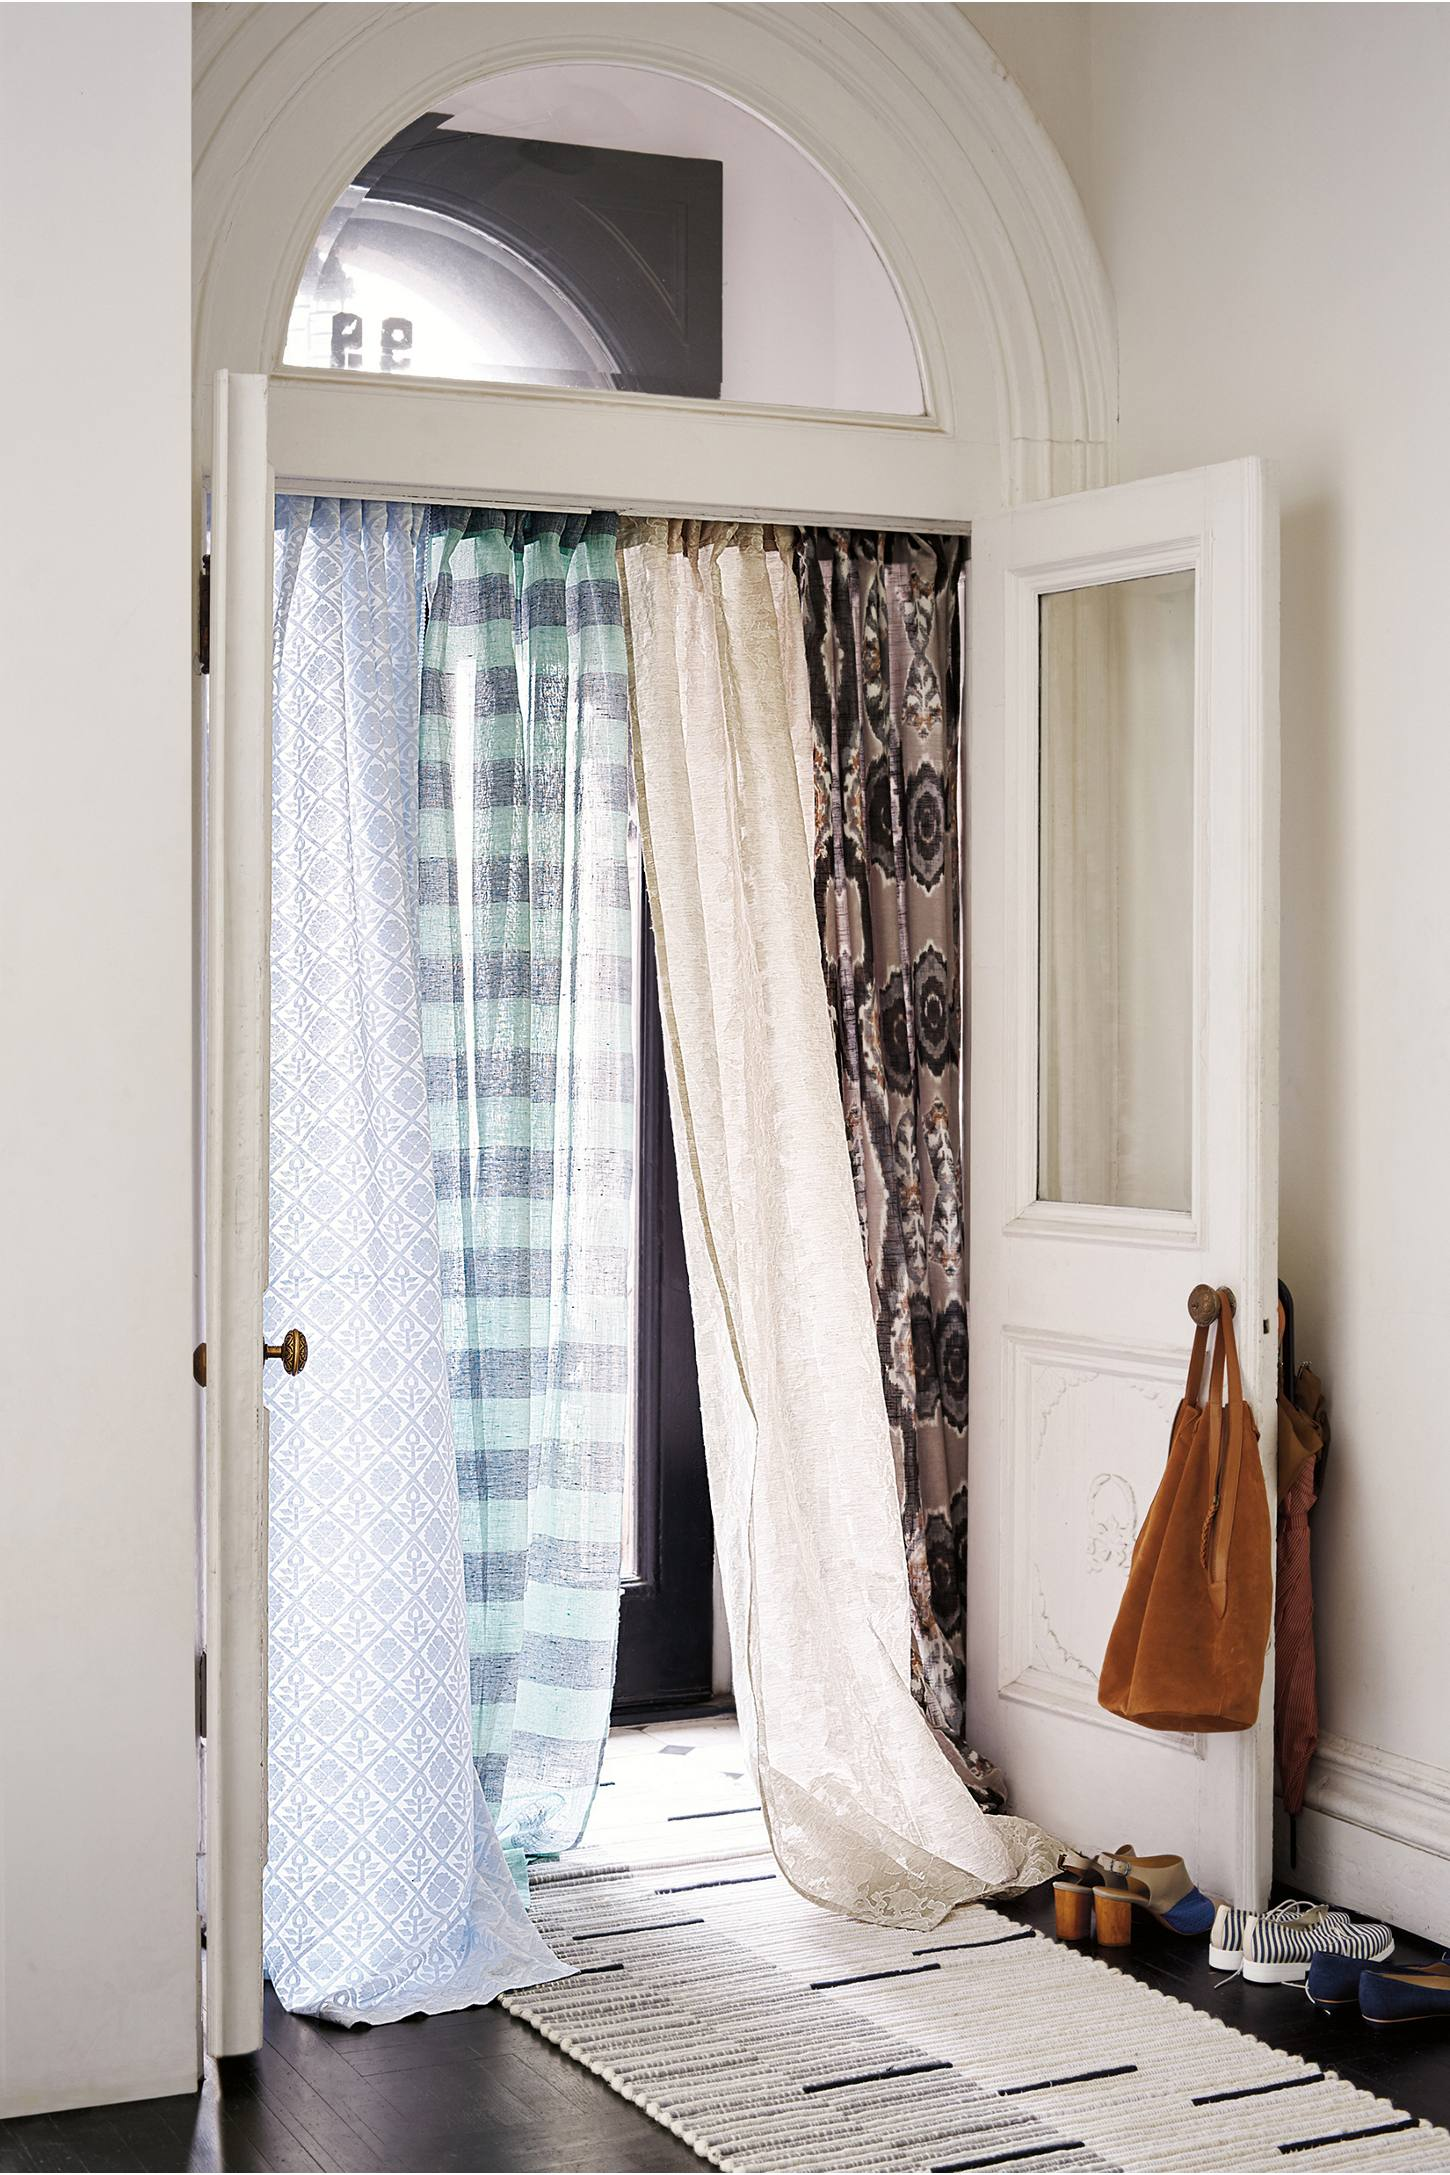 Slide View: 3: Stretched Ikat Curtain